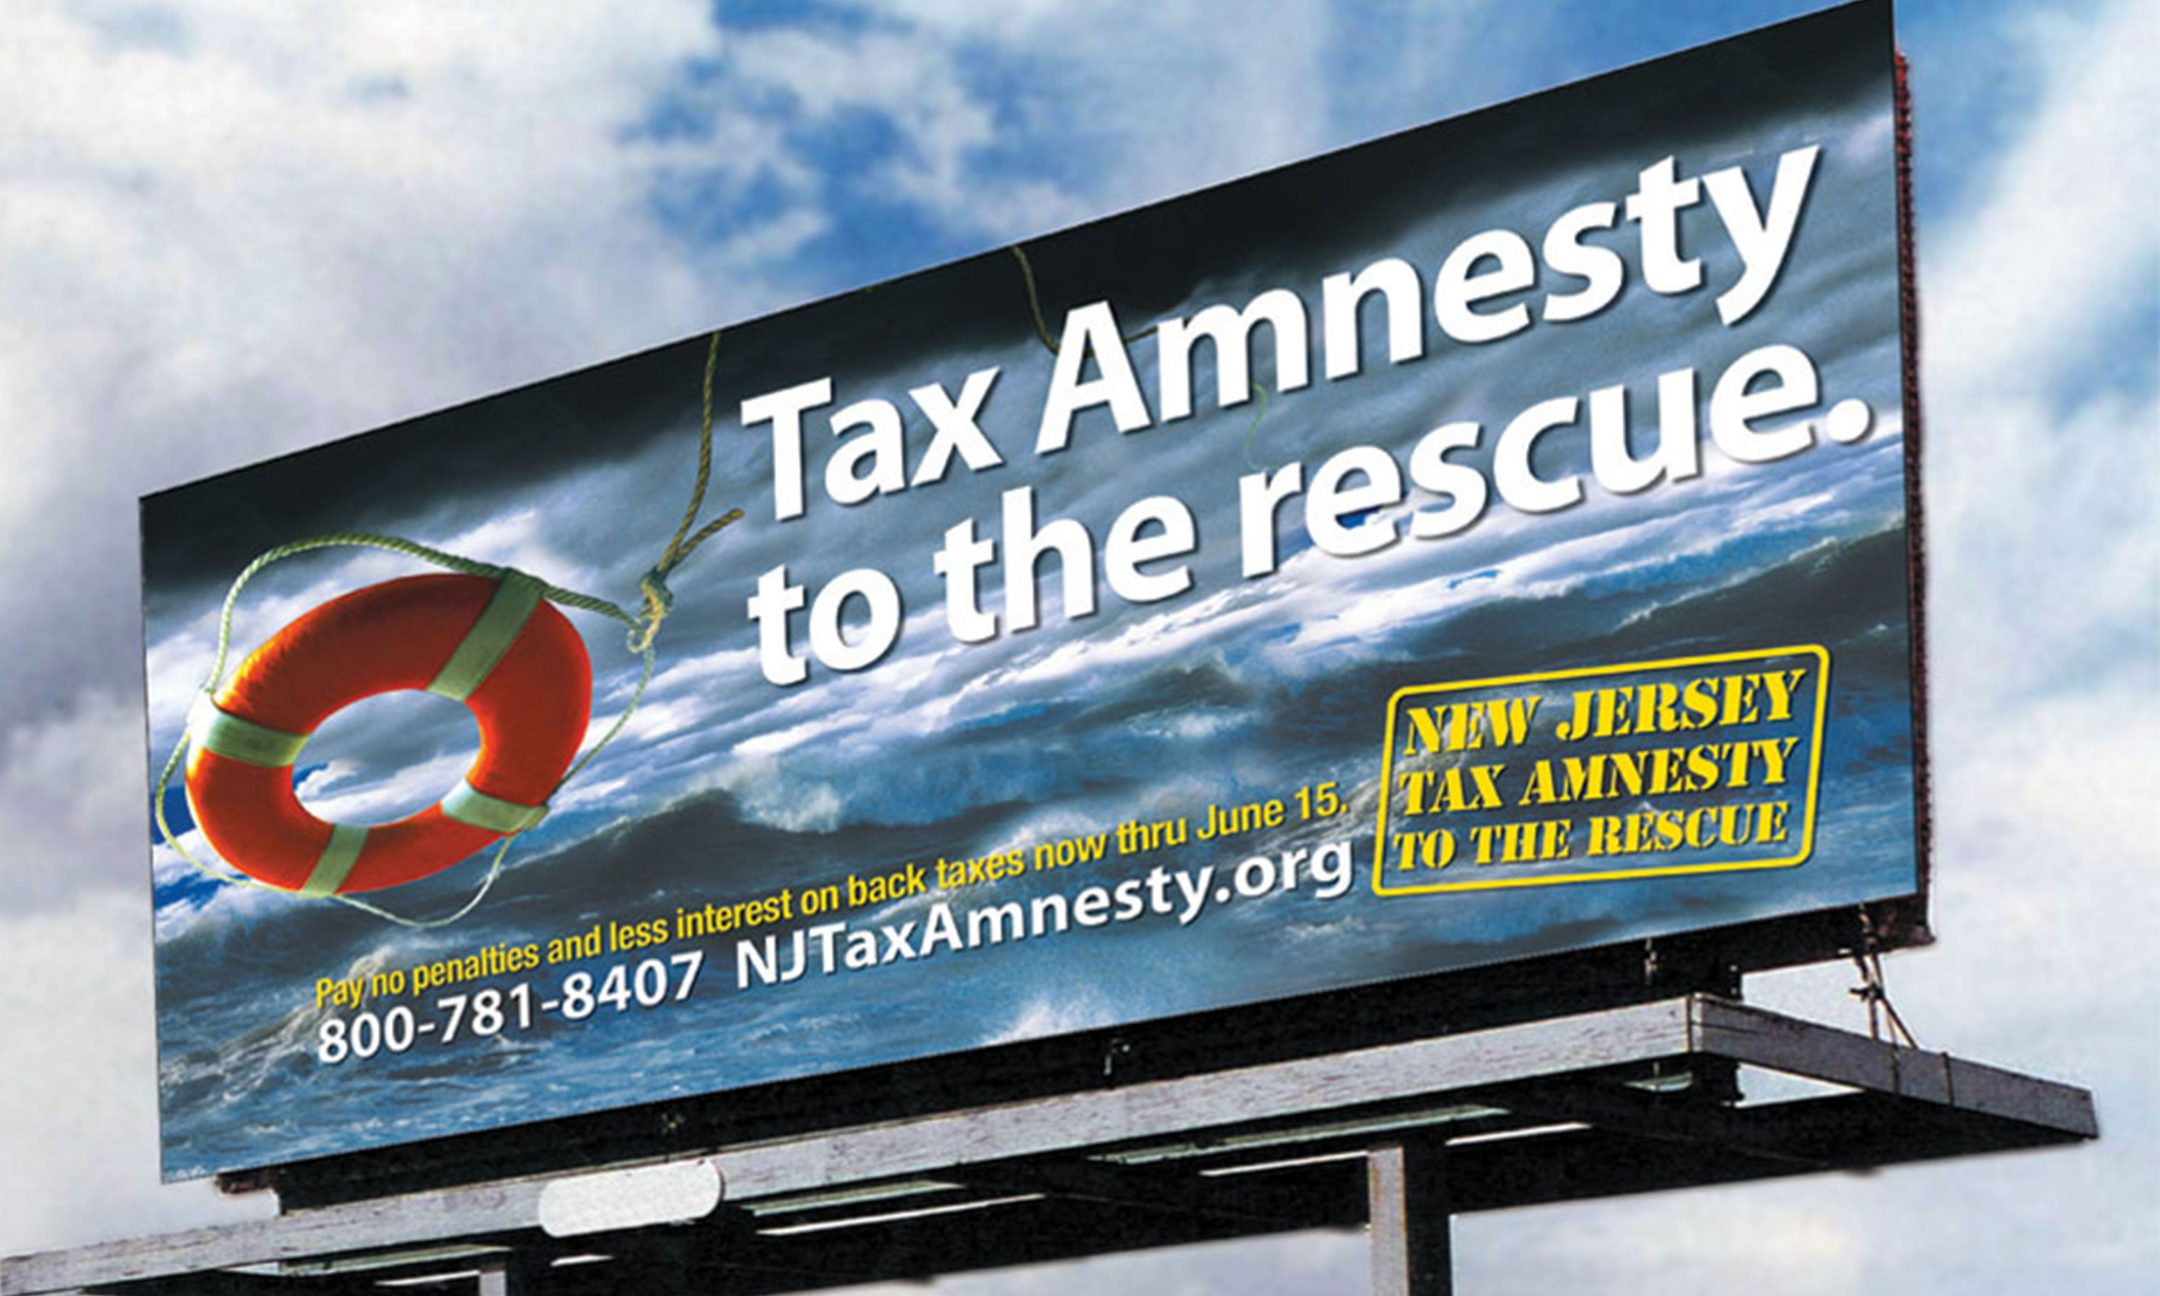 NJ Tax Amnesty OOH billboard